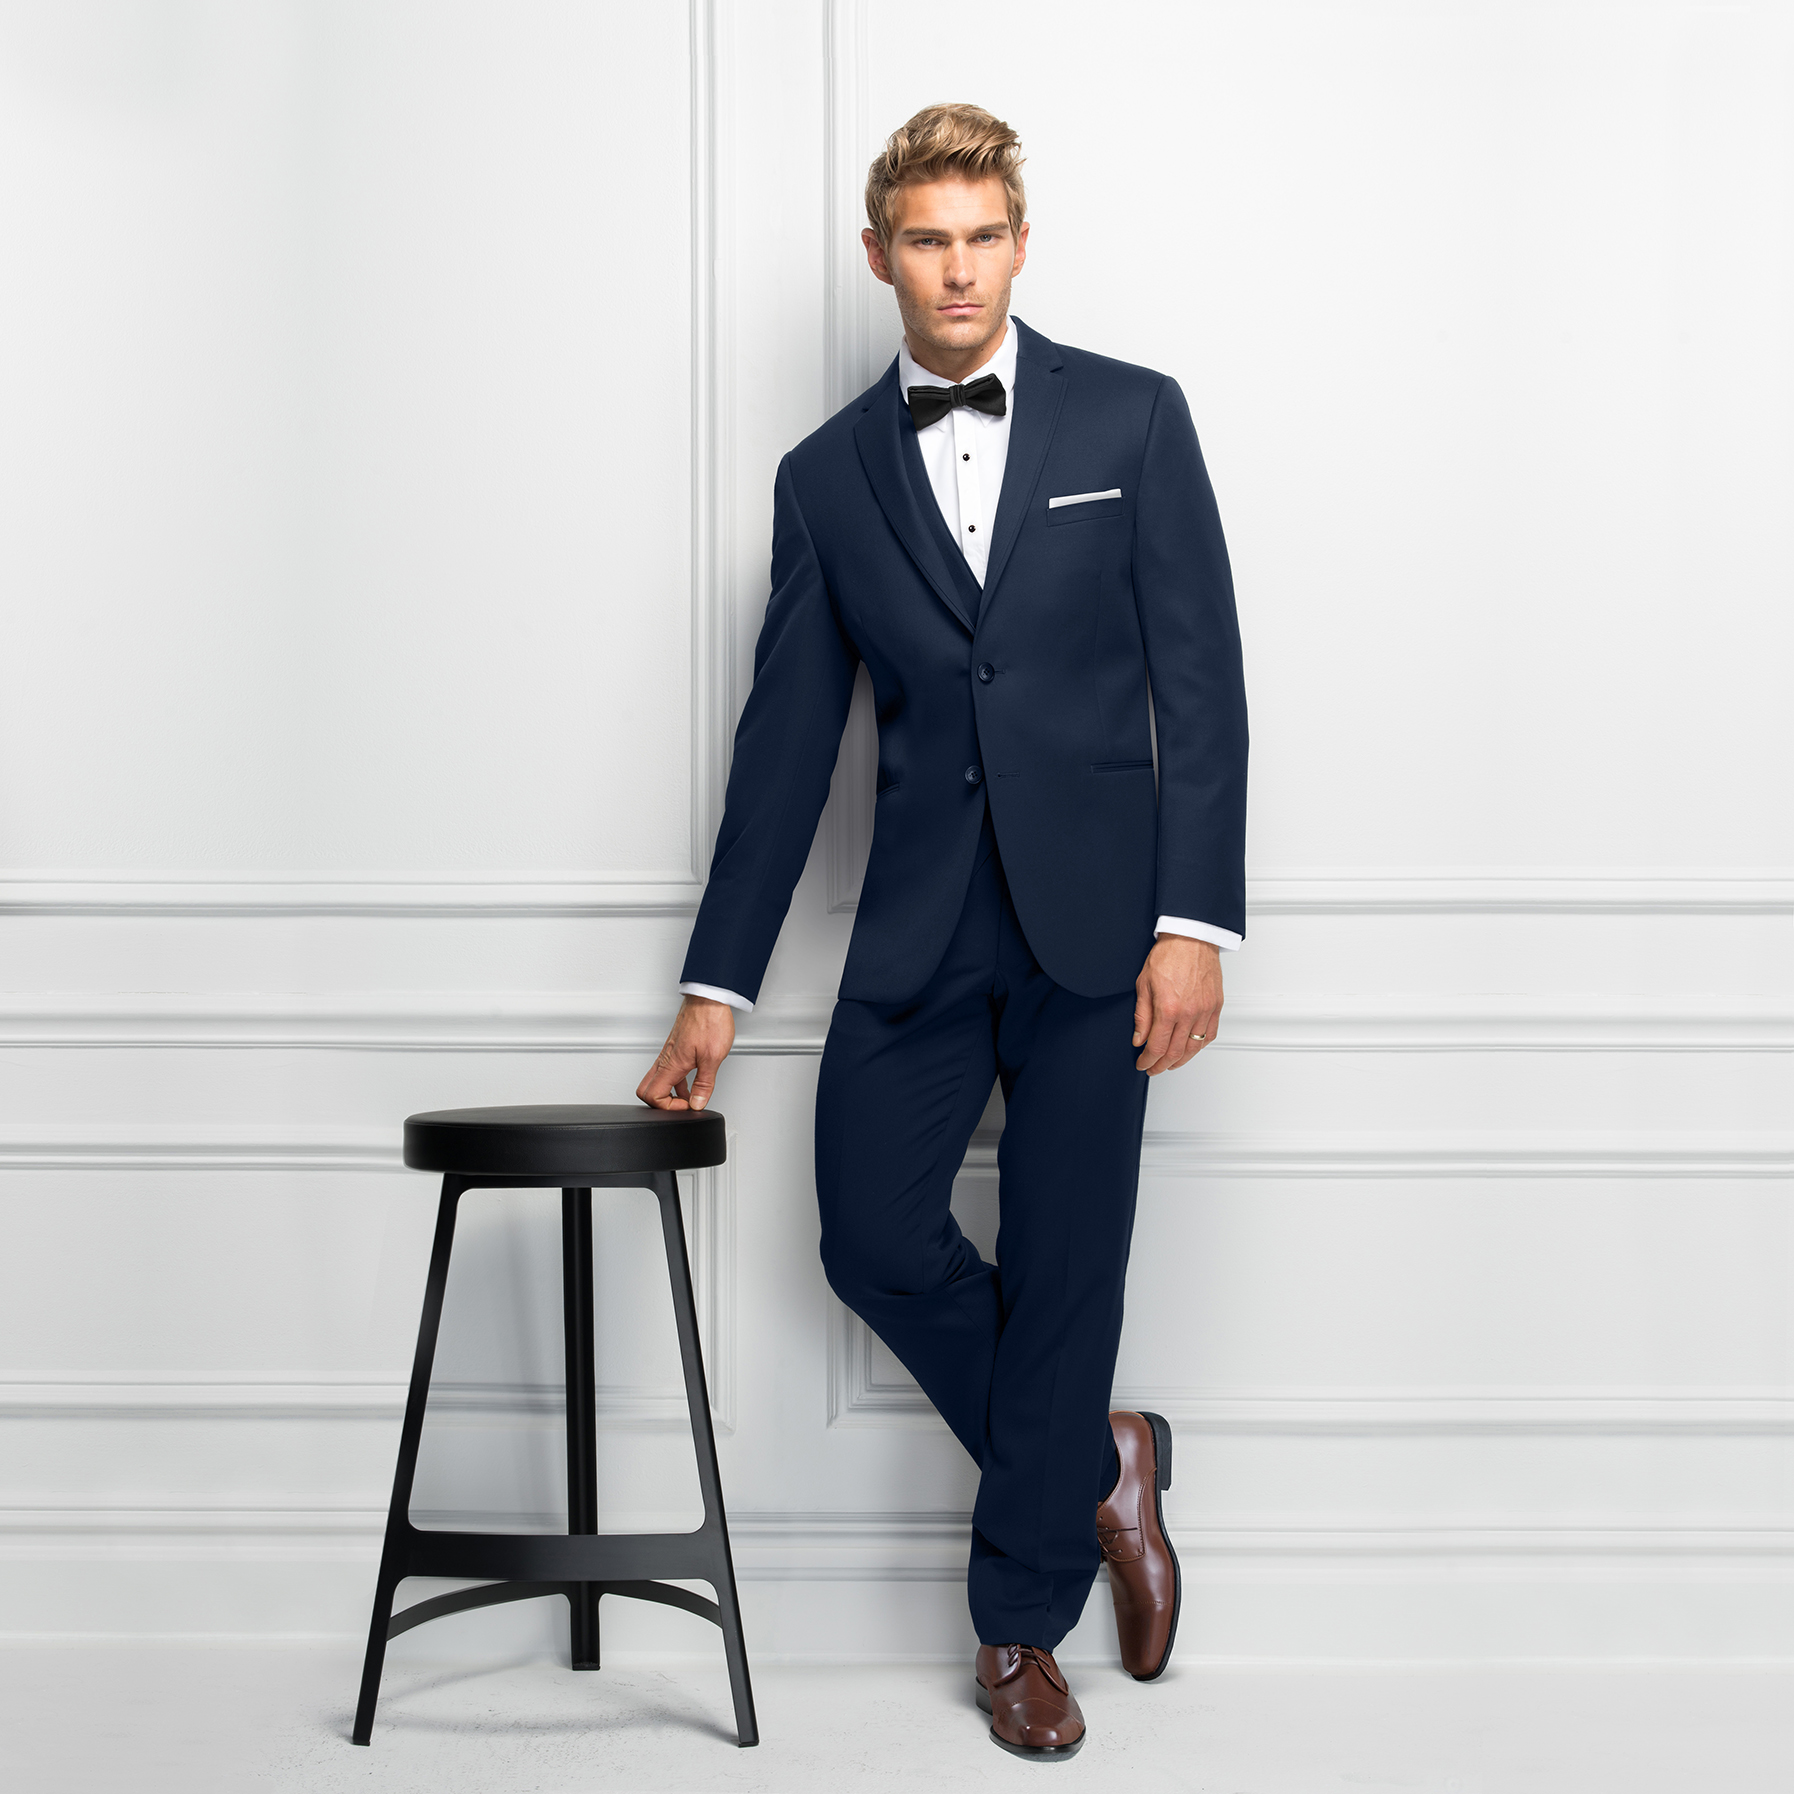 Navy Tuxedo Brown Shoes | Michael Kors Suit | available at Bride To Be Couture | 6040 Fair Oaks Blvd. Carmichael, CA 95608 | 916.972.8223 | @bridetobecouture